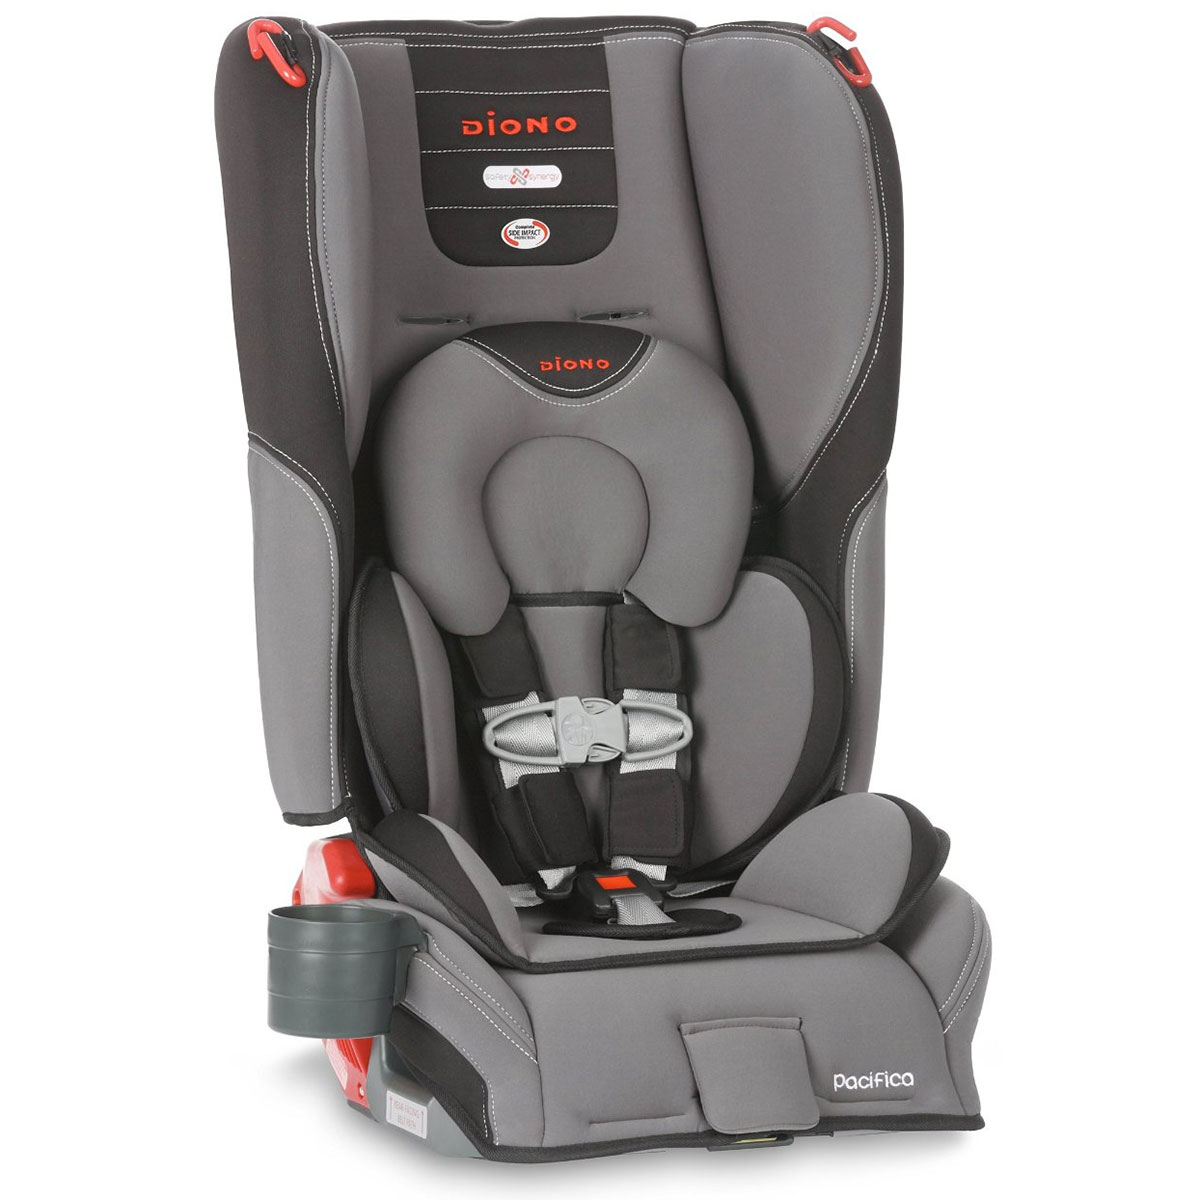 Diono Pacifica Convertible And Booster Car Seat Reviews